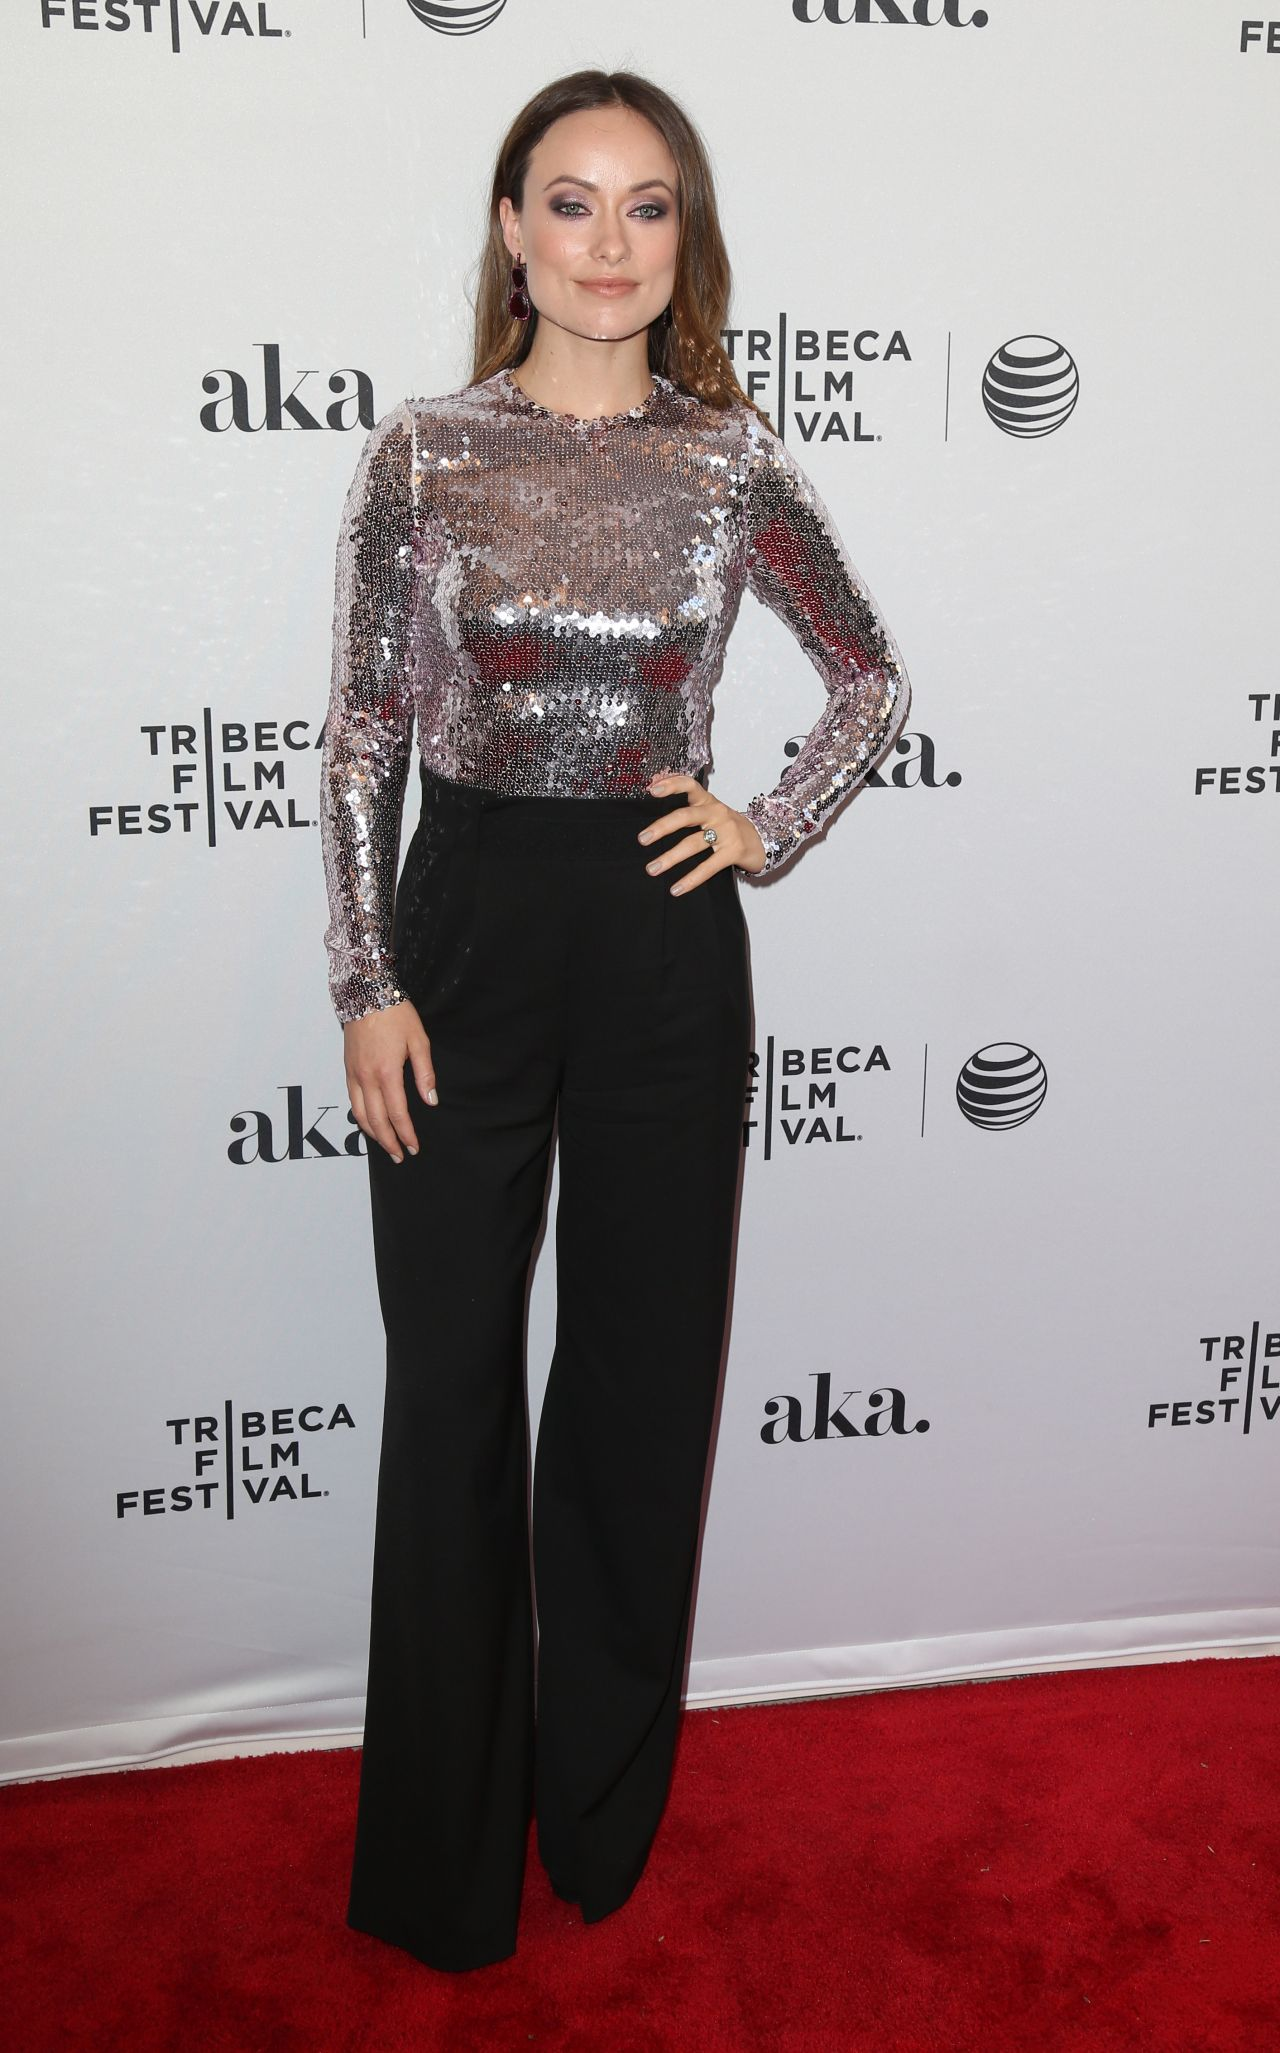 olivia-wilde-meadowland-premiere-at-2015-tribeca-film-festival_12